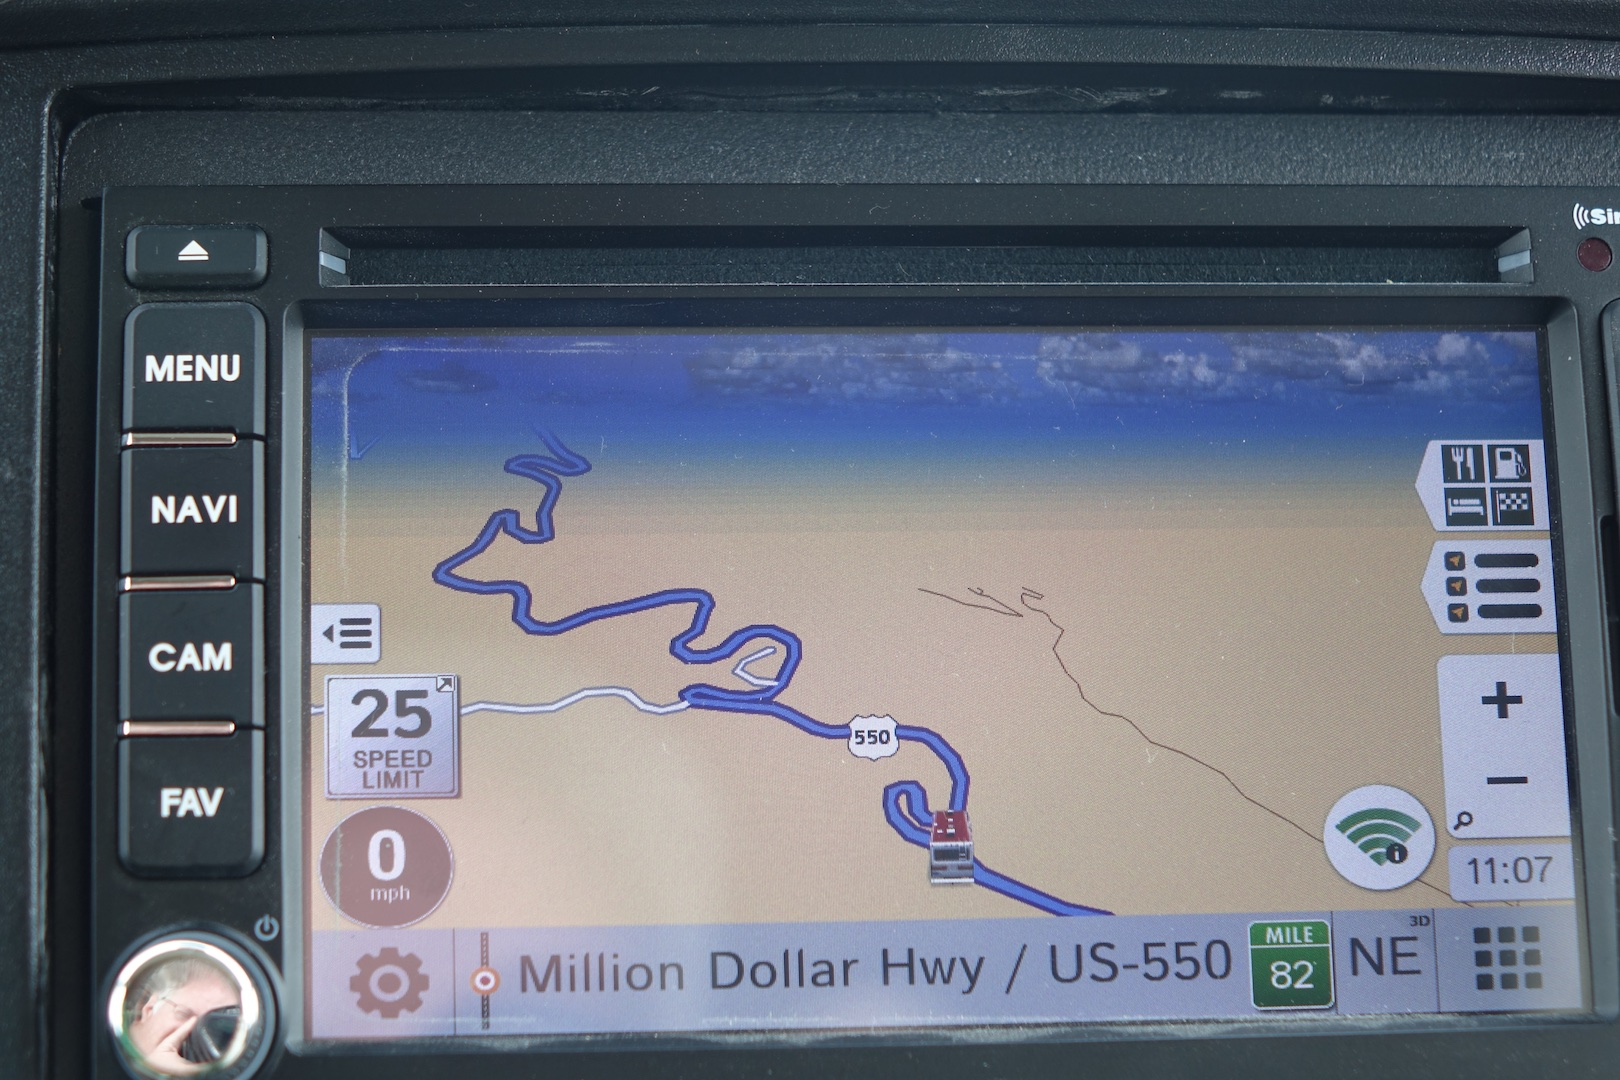 GPS showing route along Million Dollar HWY.